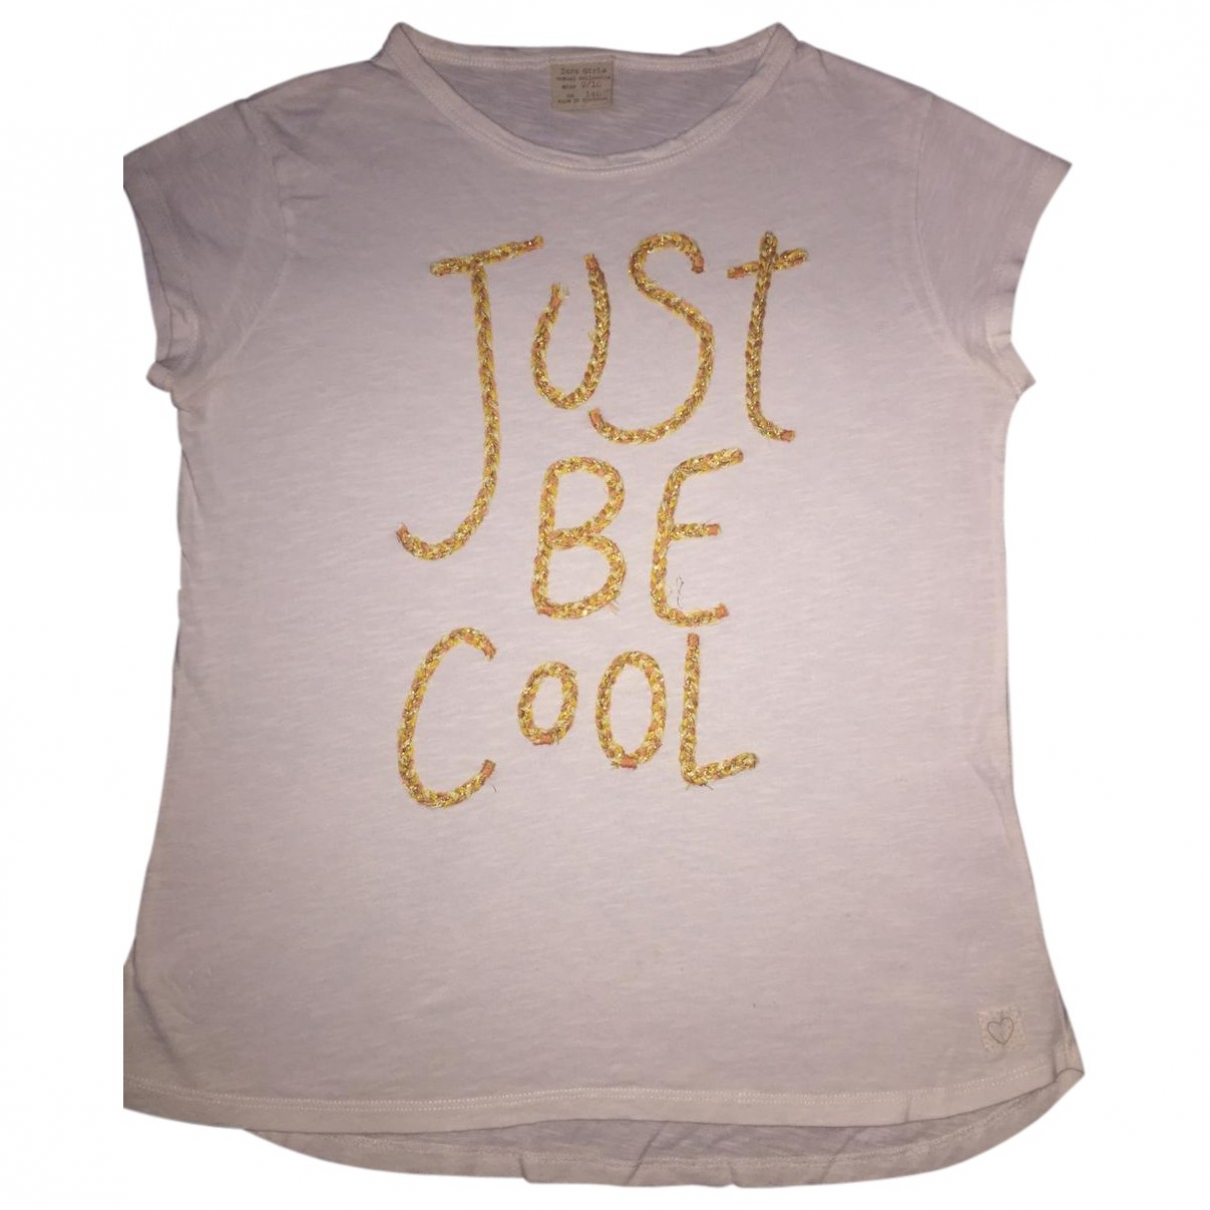 Zara \N White Cotton  top for Kids 10 years - up to 142cm